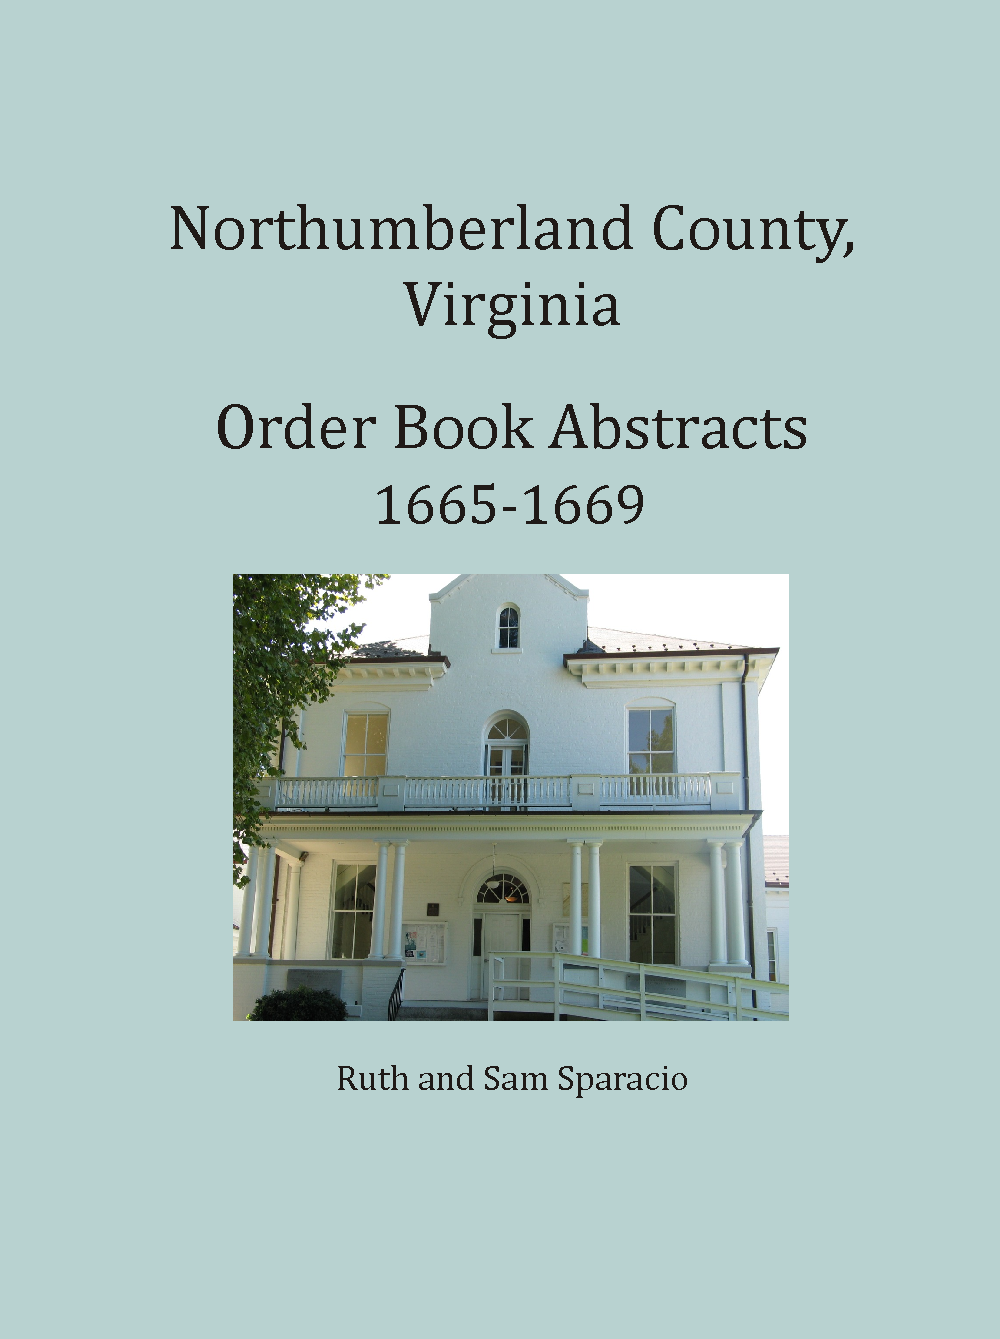 Northumberland County, Virginia Order Book, 1665-1669